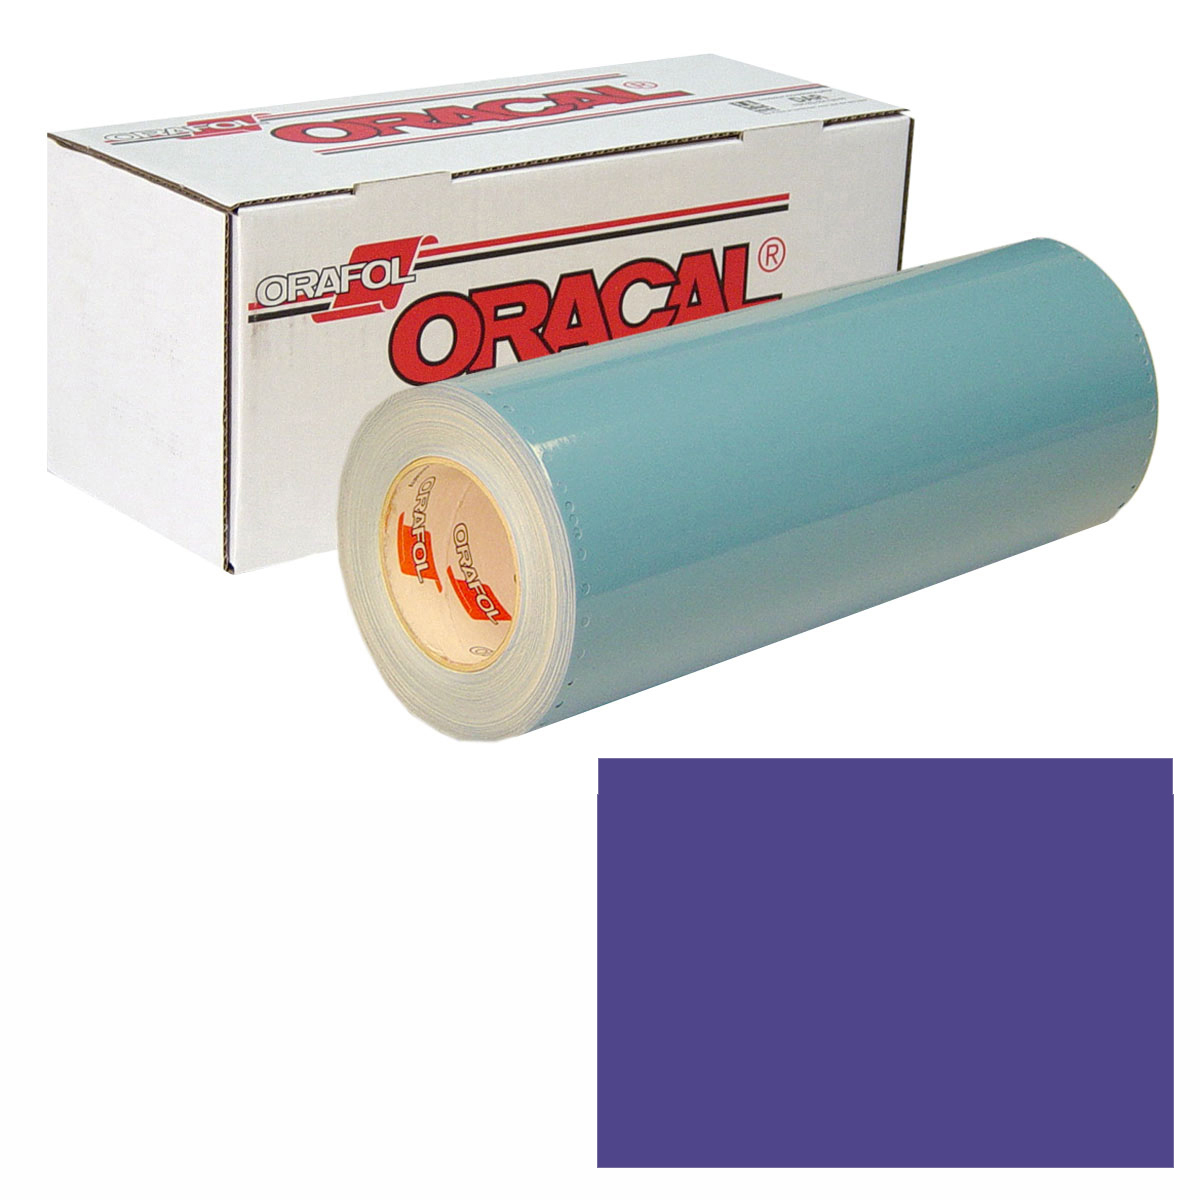 ORACAL 751 Unp 48in X 50yd 518 Steel Blue